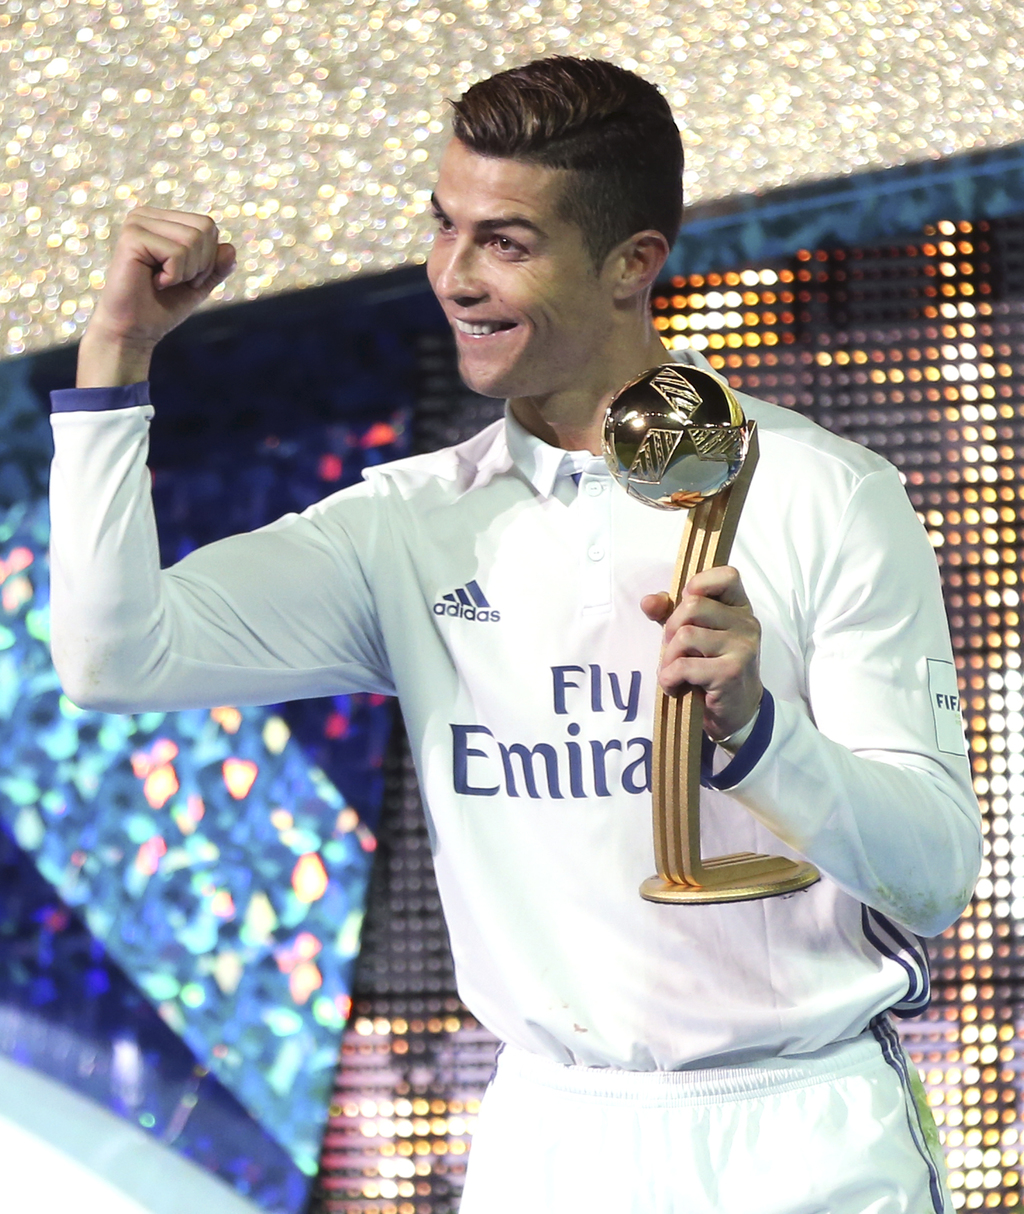 Real Madrid's Cristiano Ronaldo poses with the trophy for a photo after beating Kashima Antlers 4-2 to win the FIFA Club World Cup socc...